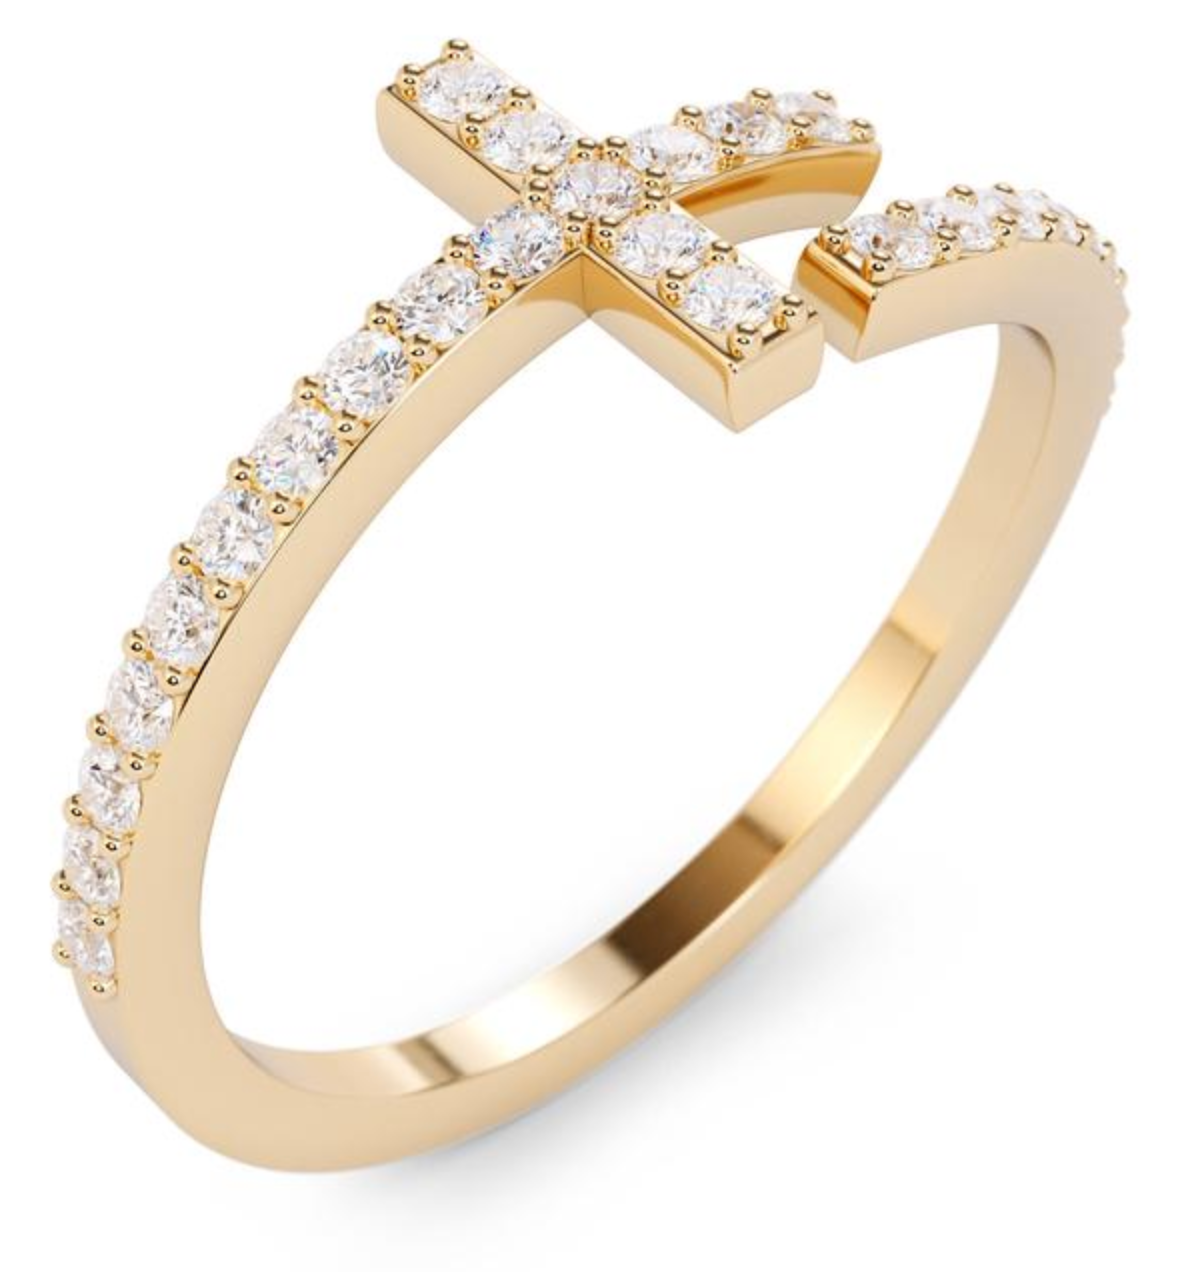 The W Brothers Diamond Cross Ring hand-crafted to perfection in solid 18k yellow gold, solid 14k white gold, solid 14k rose gold, 925 Sterling Silver. Luxurious fashion cross diamond ring in solid gold available only at thewbros.com